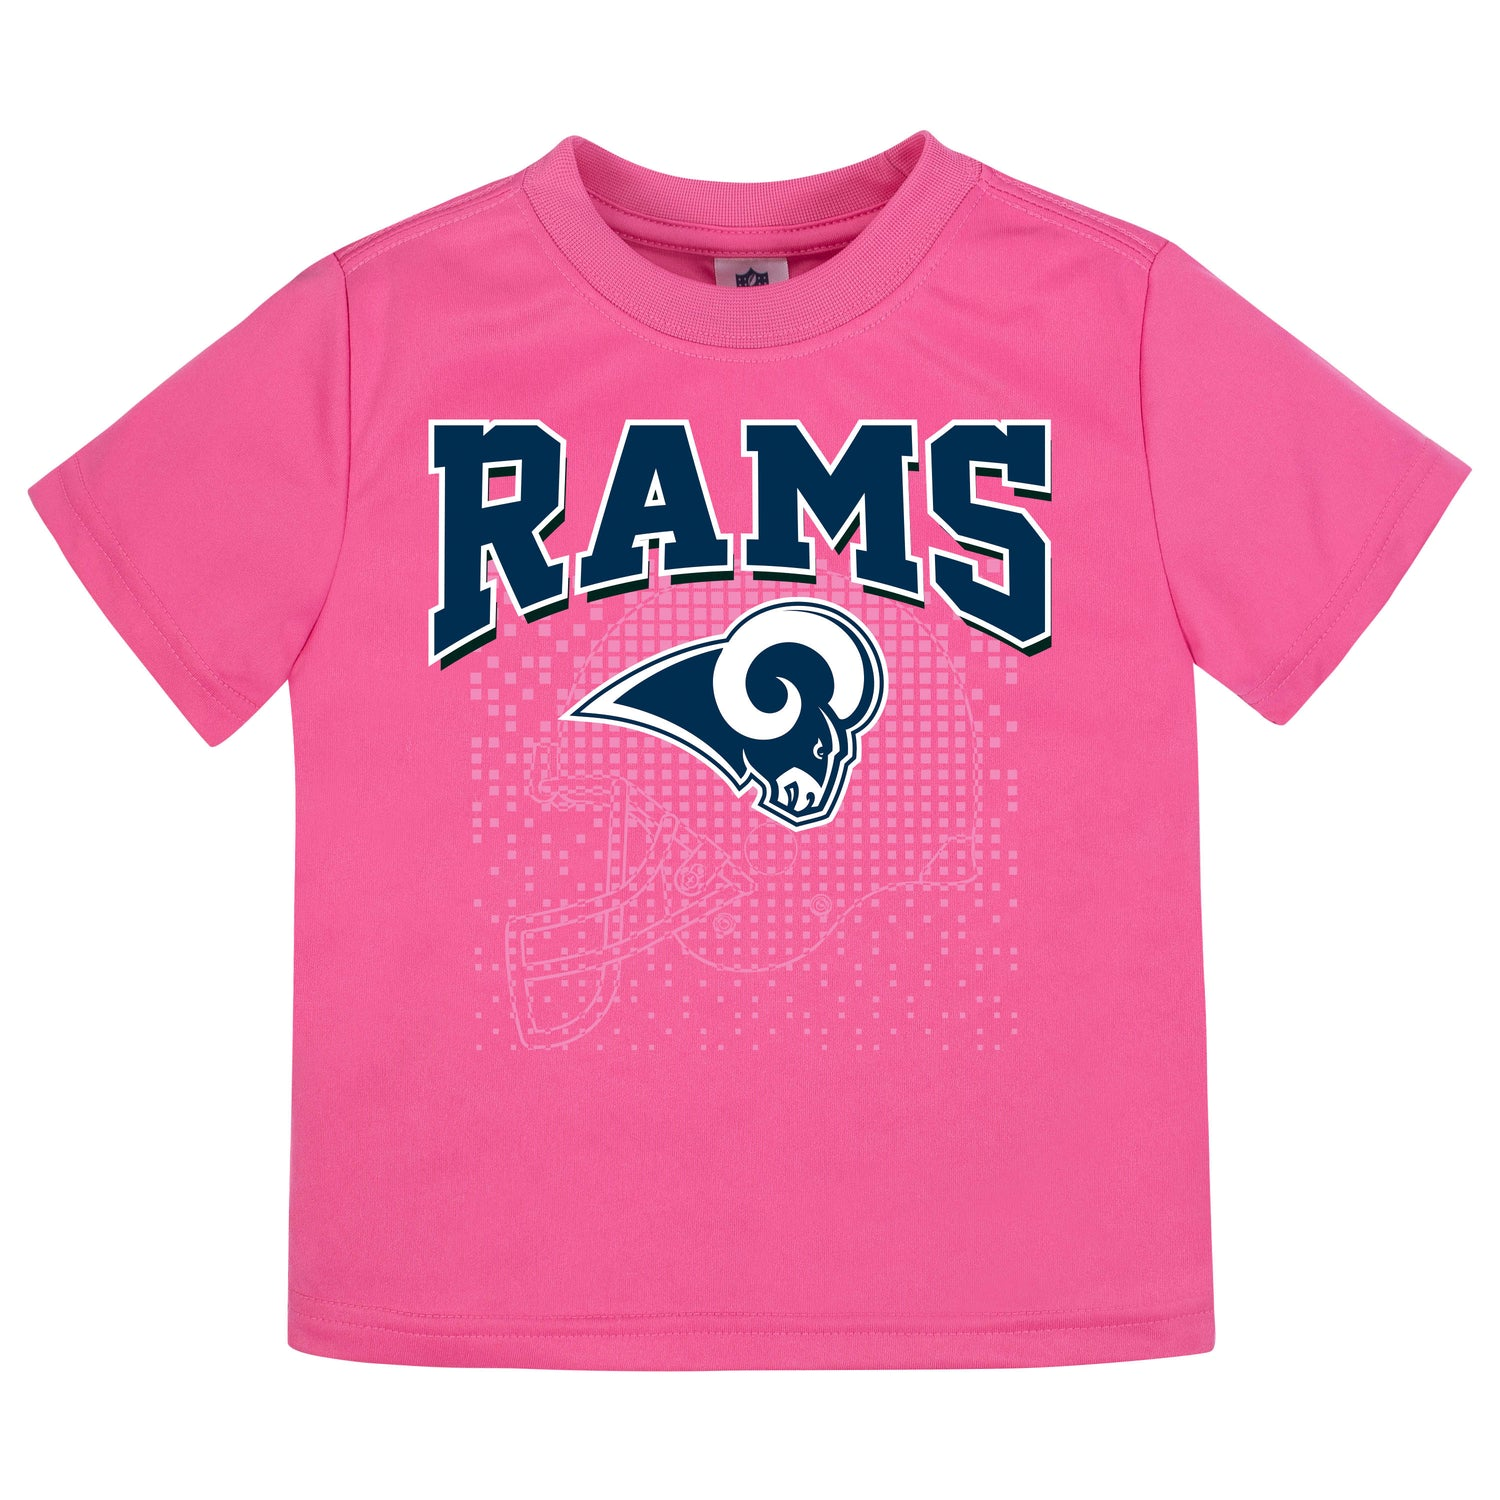 new la rams shirts